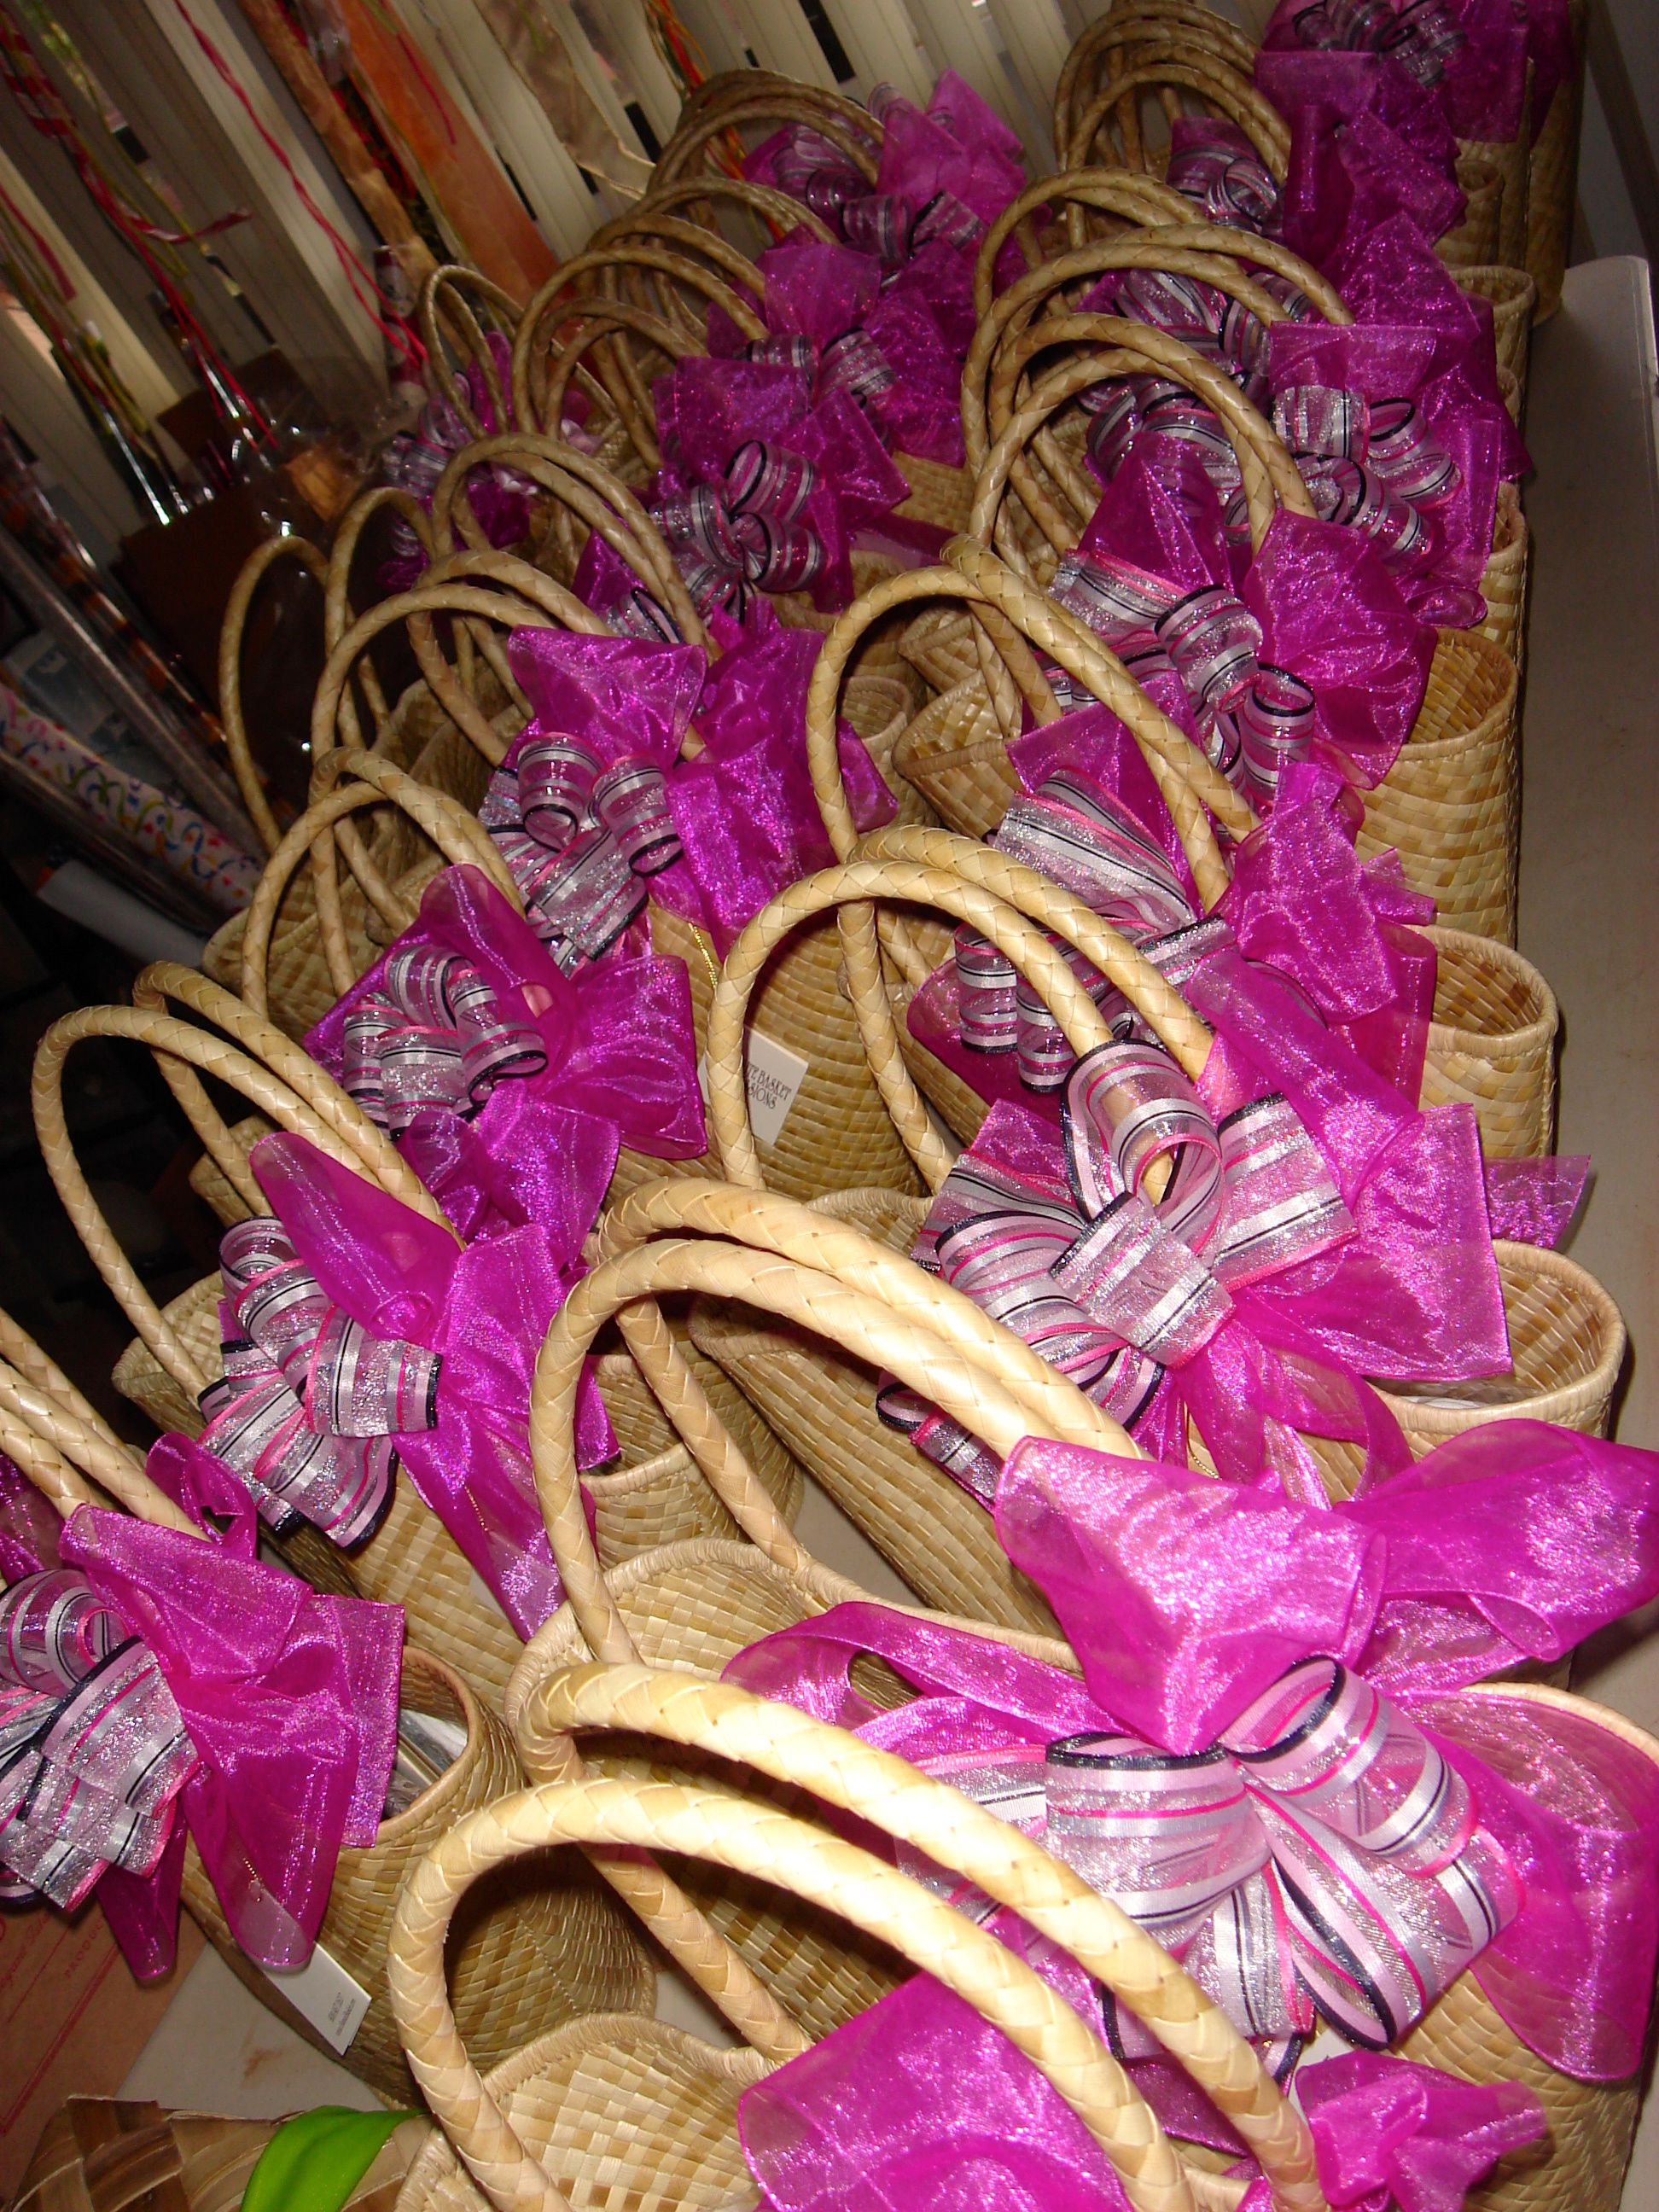 Hawaiian Spa Tote Bags for Wedding Favors. From: Exquisite Basket ...